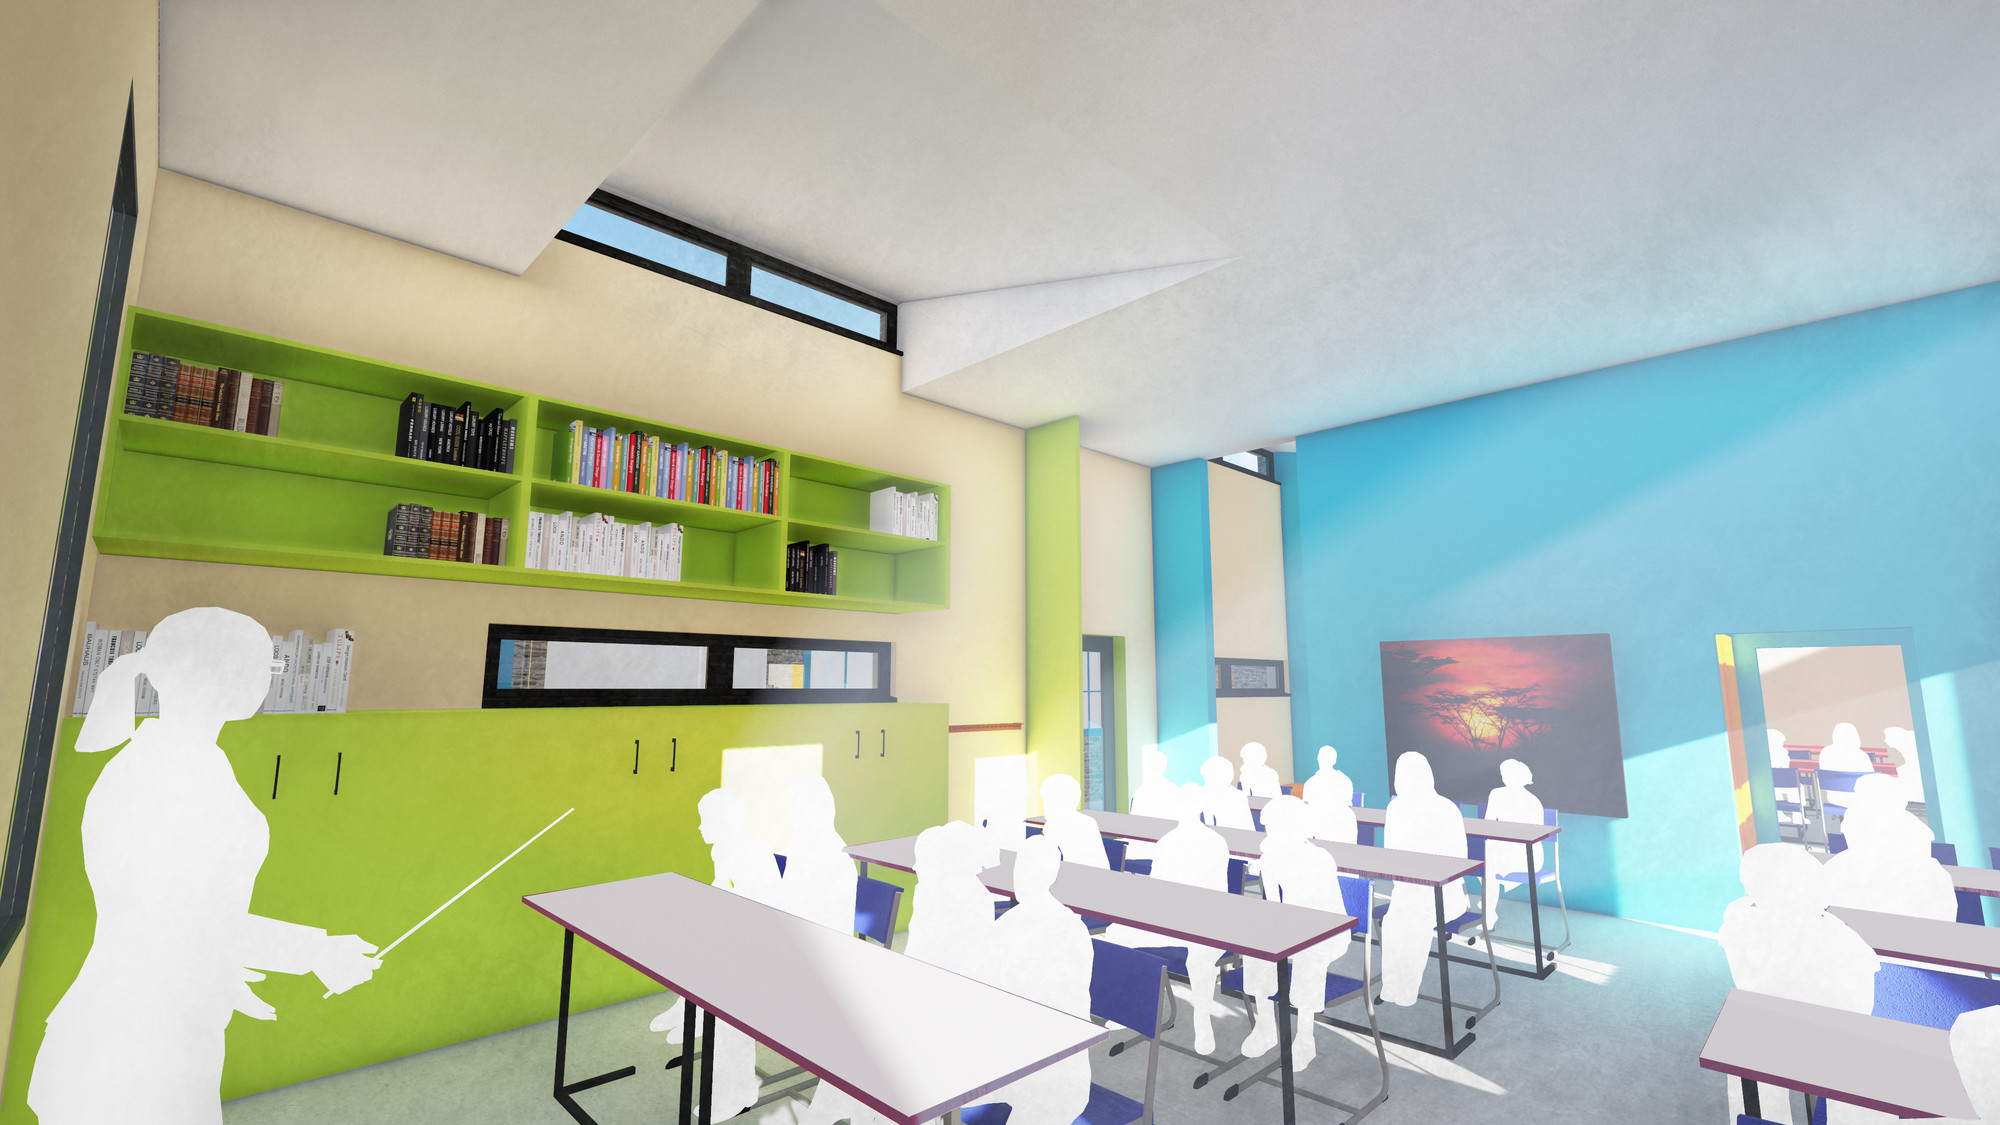 Room Design Classroom ~ Place by design wins cool school competition